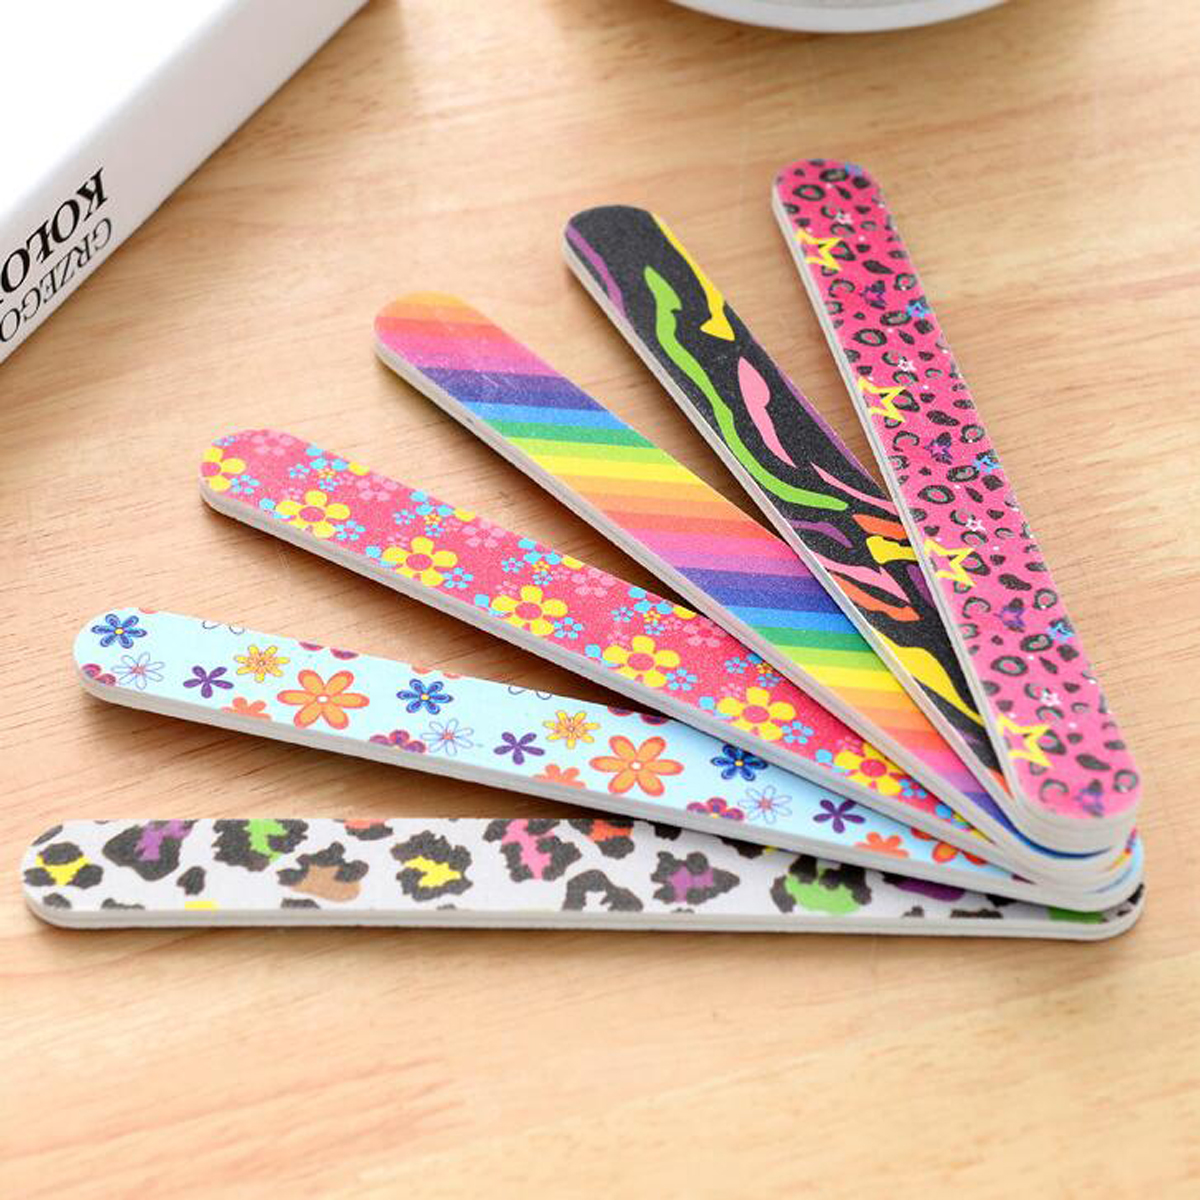 10pcs/pack Fashion Printed Double-sided Nail File Sanding Nail Polishing Grinding Strip Manicure Nail Art Tool Accessories